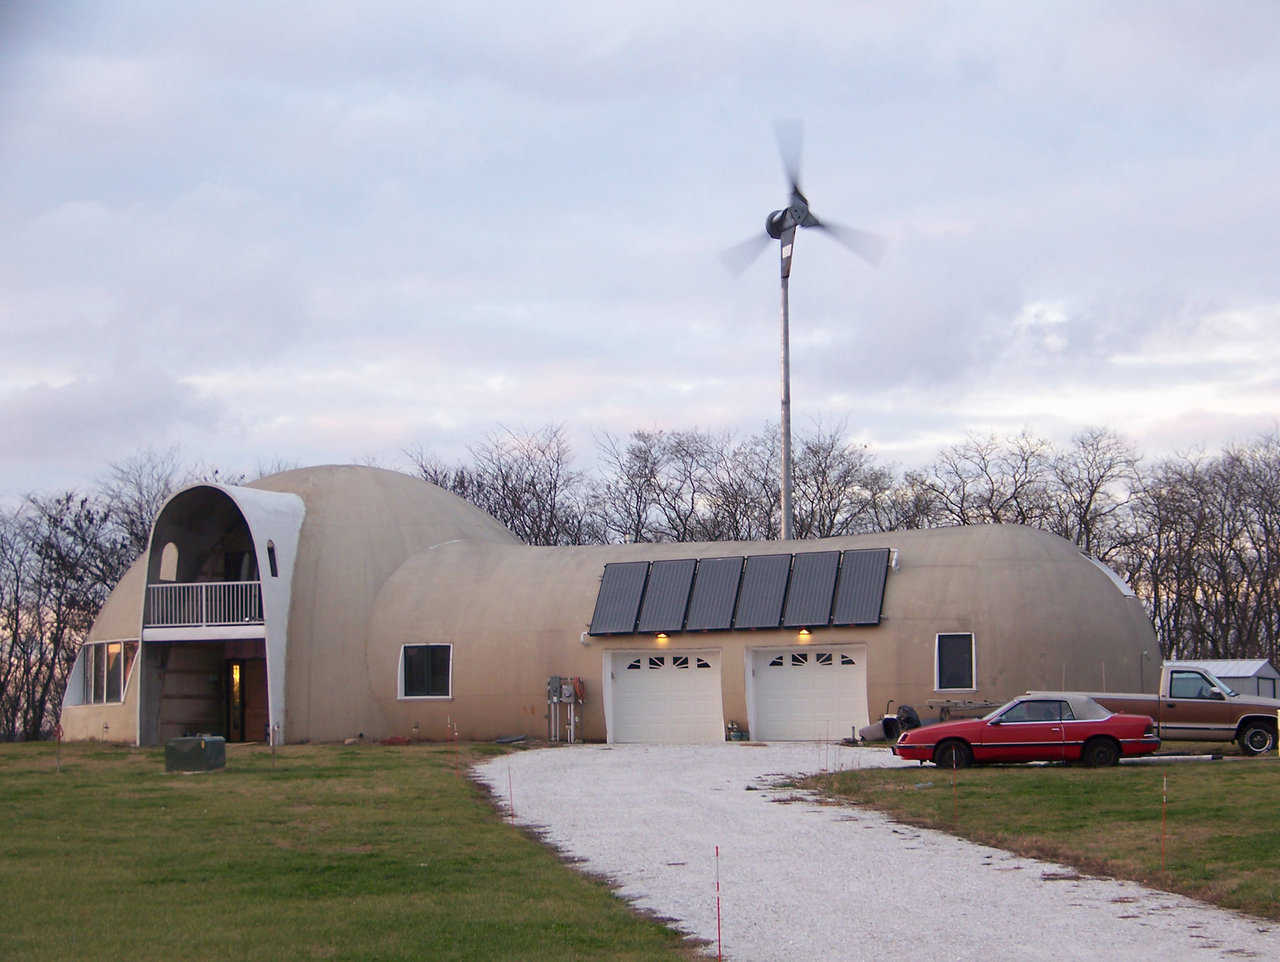 Solar Equipped in Illinois — Kati and Robin Millers' Monolithic Dome home has 6 solar-thermal collectors that collect the sun's heat and convert it into thermal energy. It heats water that circulates through the radiant heating system to heat the home.